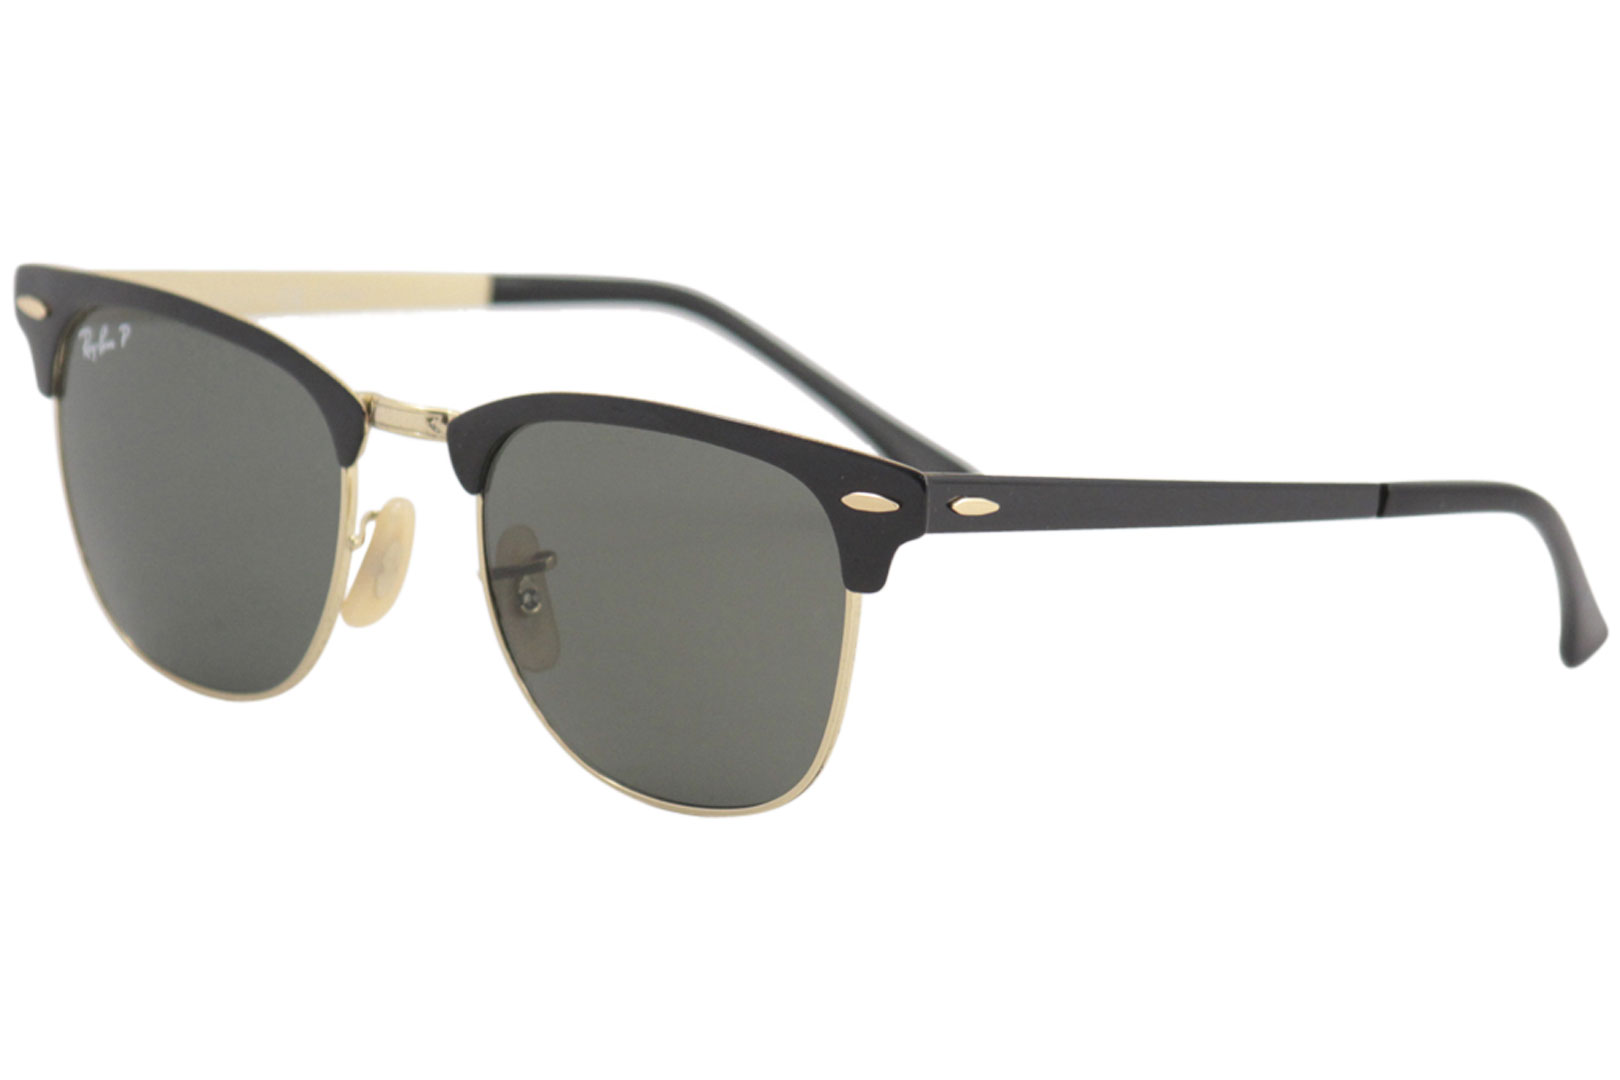 f70582ee76 Ray Ban Clubmaster 3716 187 58 Black Gold Green Polarized RayBan ...